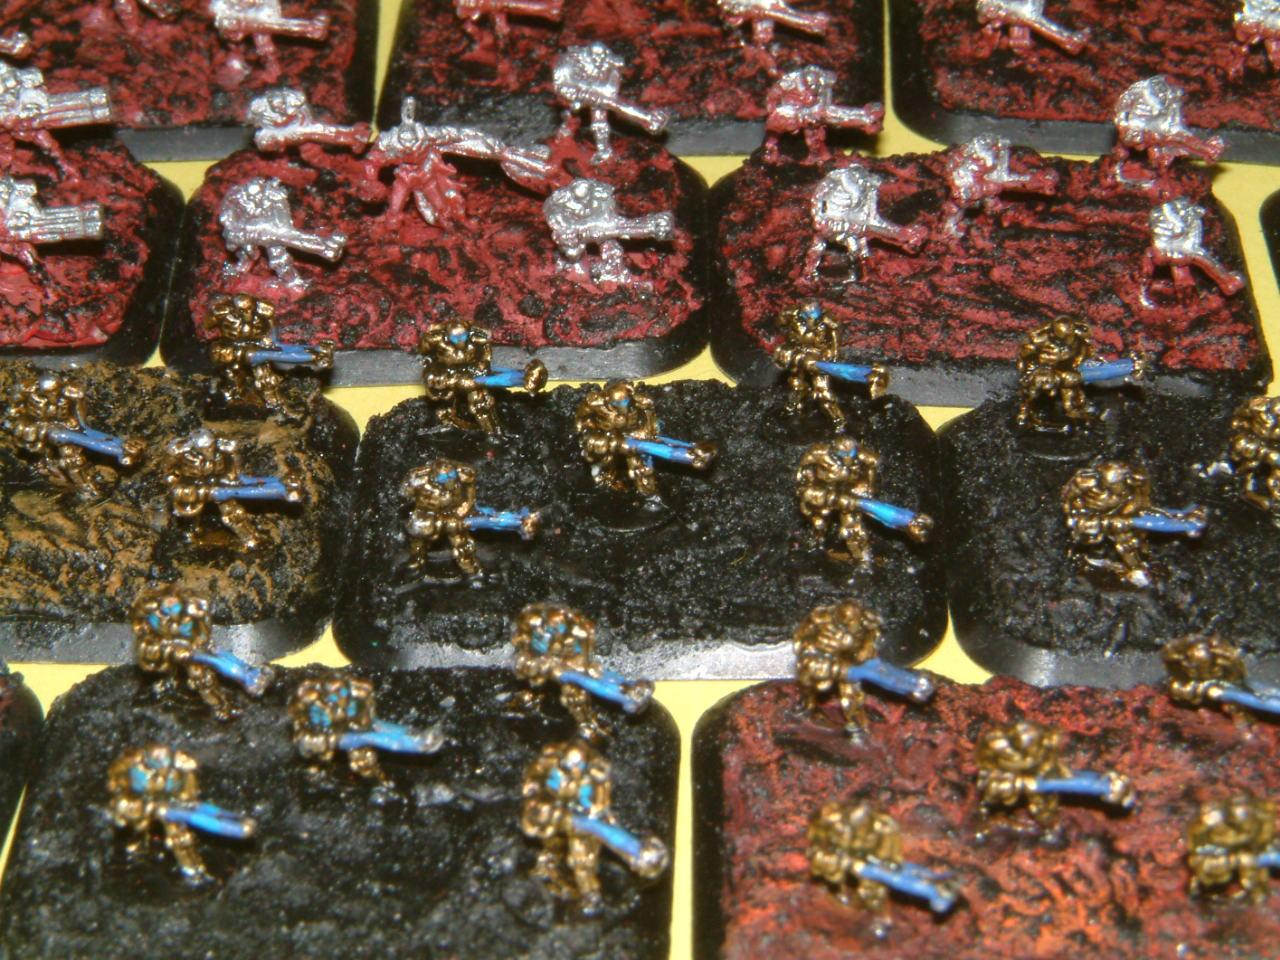 Army, Conversion, Dead, Epic, Extinctor, Gauss, Lord, Necrons, Old, Oldhammer, Quest, Rogue, Star, Style, Trader, Walking, Warriors